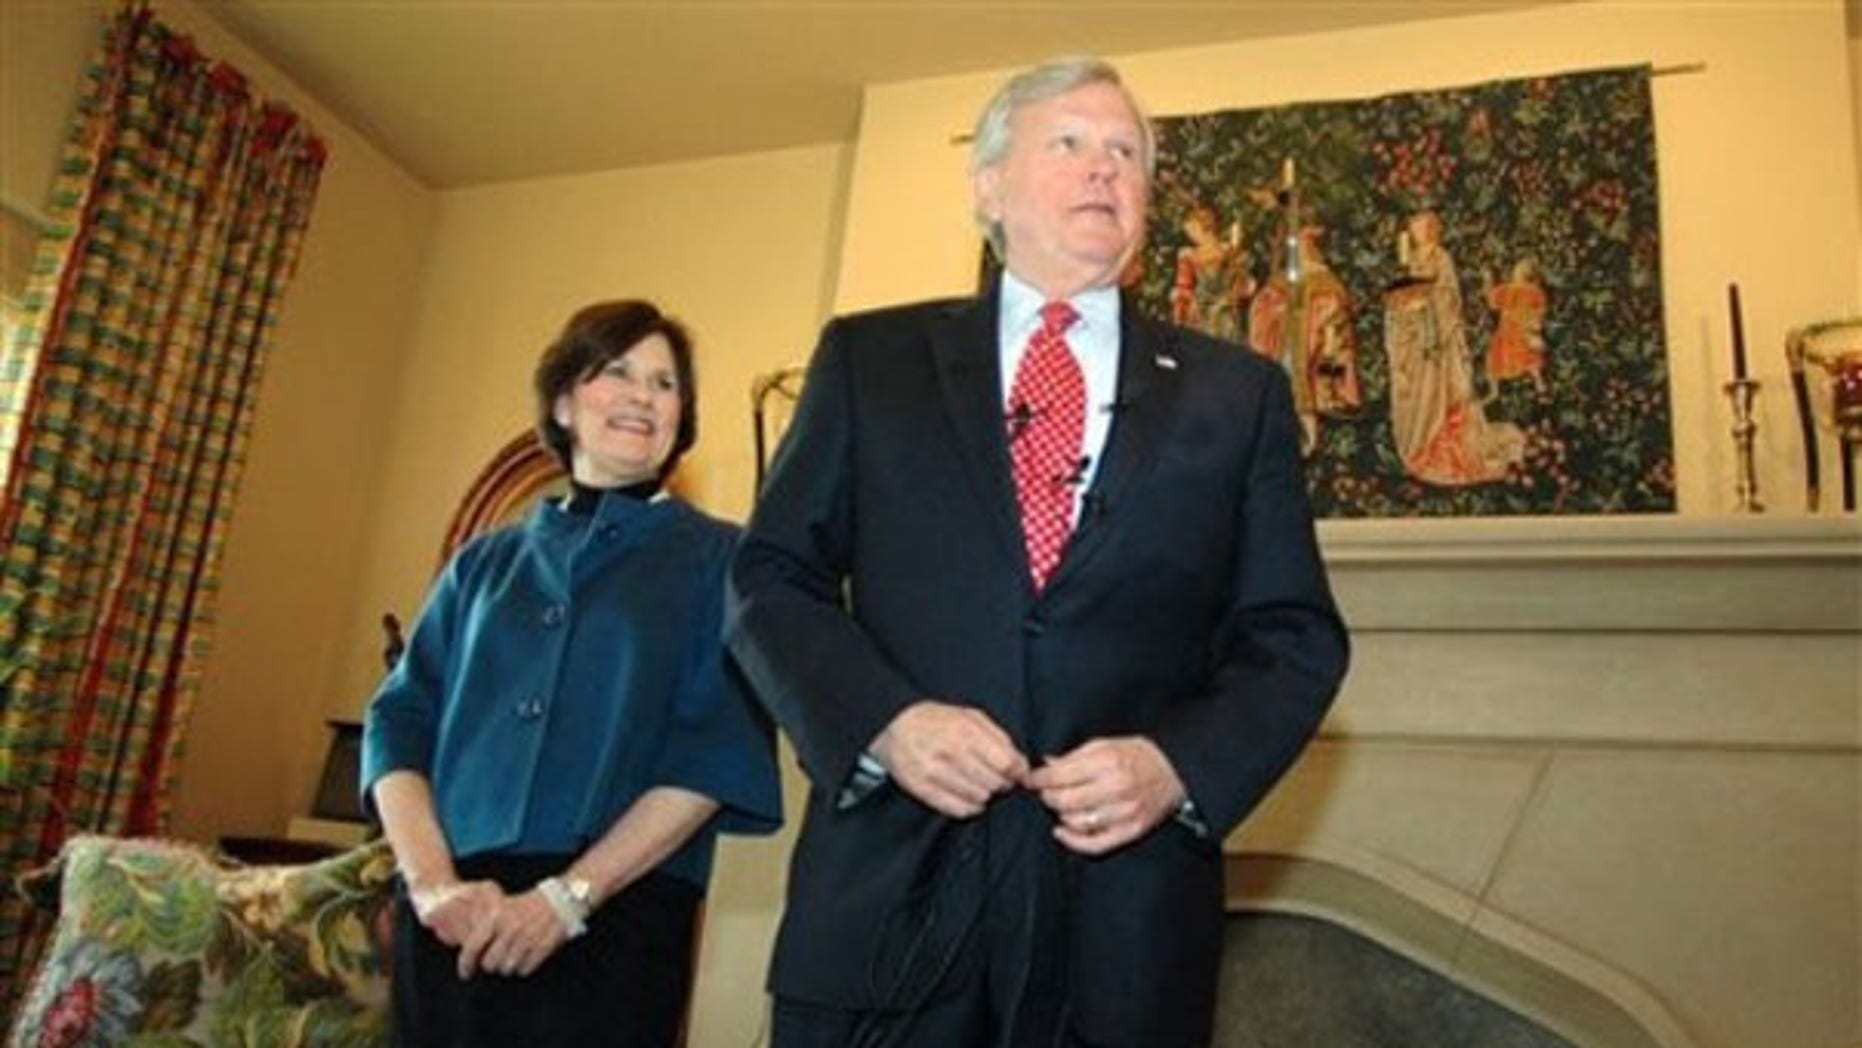 Rep. Parker Griffith, accompanied by his wife Virginia, prepares to talk to the media at his home in Huntsville, Ala. , Dec. 22. (AP Photo)